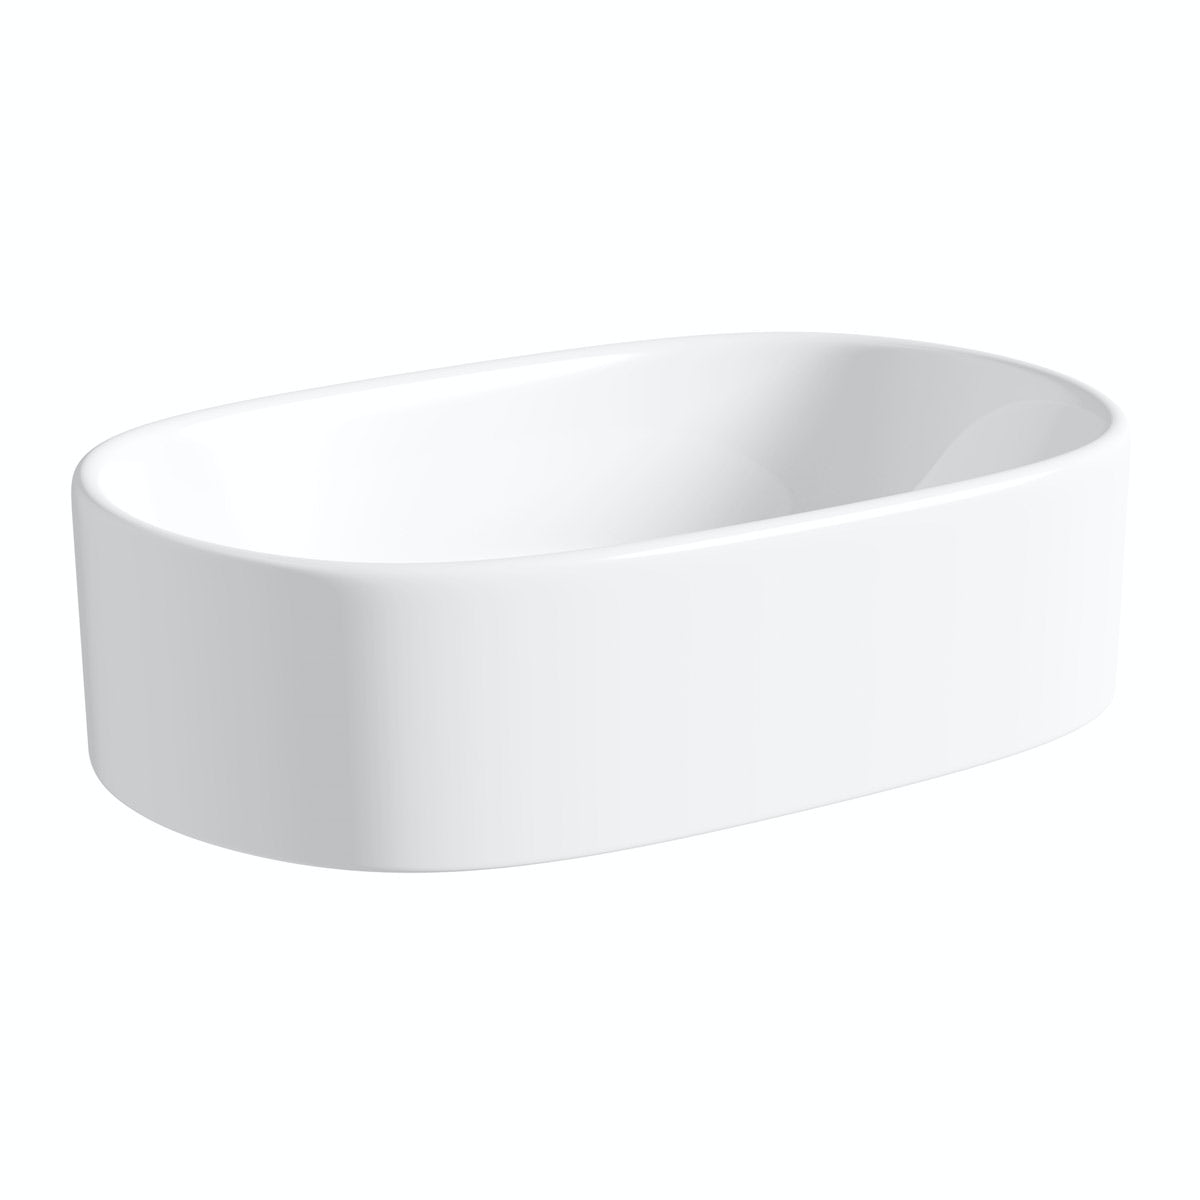 Mode Tate countertop basin 555mm